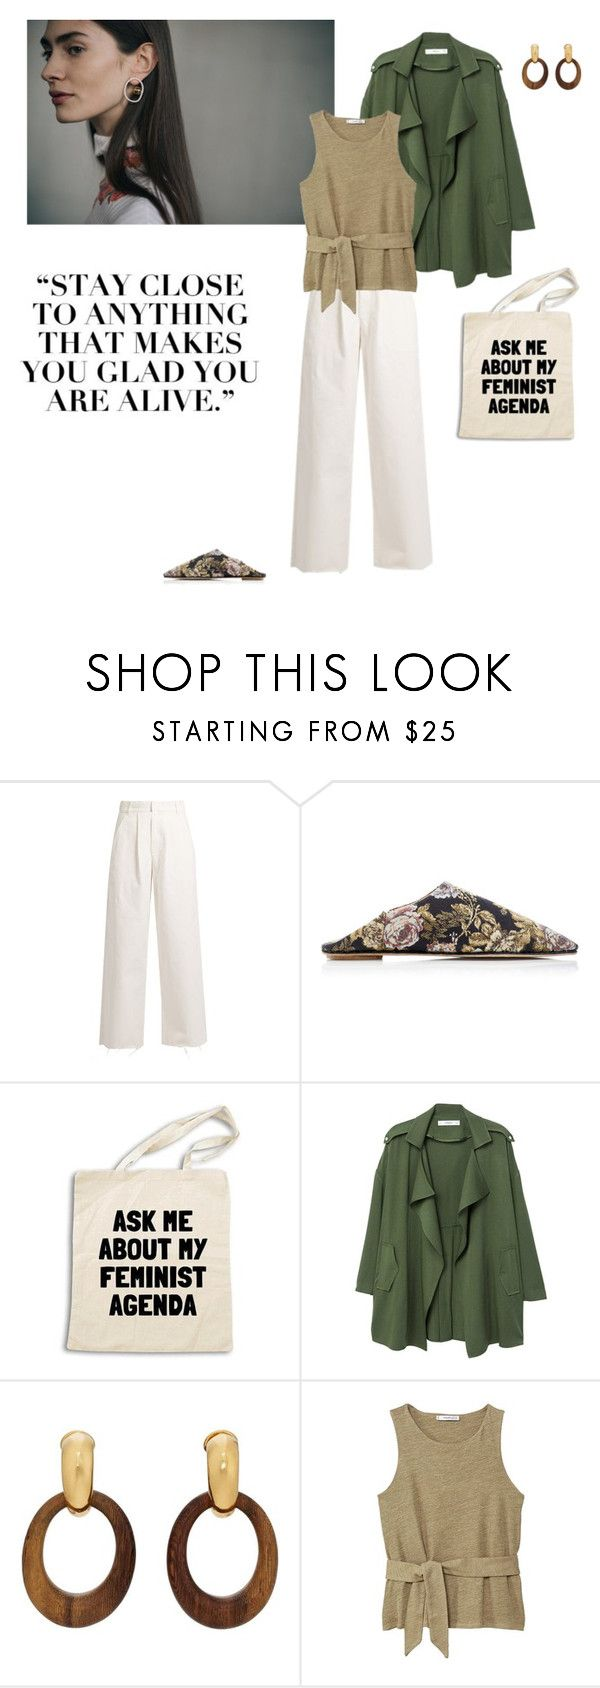 """11/03"" by dorey on Polyvore featuring Raey, MANGO, Goossens, natural, SpringStyle, spring2018 and minimaliam"